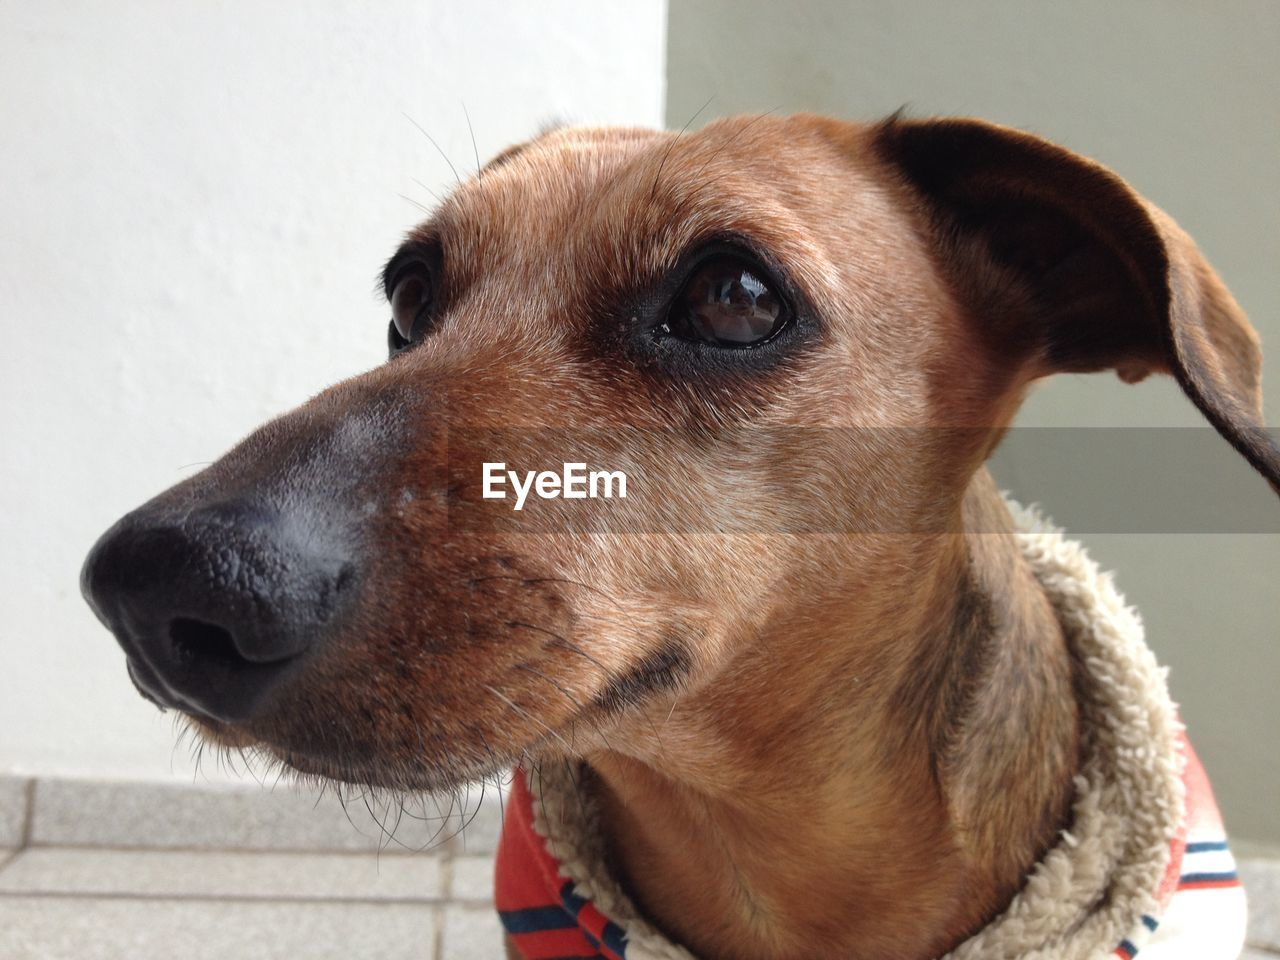 one animal, pets, domestic, domestic animals, dog, animal themes, canine, animal, mammal, vertebrate, close-up, looking, looking away, animal body part, no people, animal head, indoors, brown, day, focus on foreground, animal eye, snout, animal nose